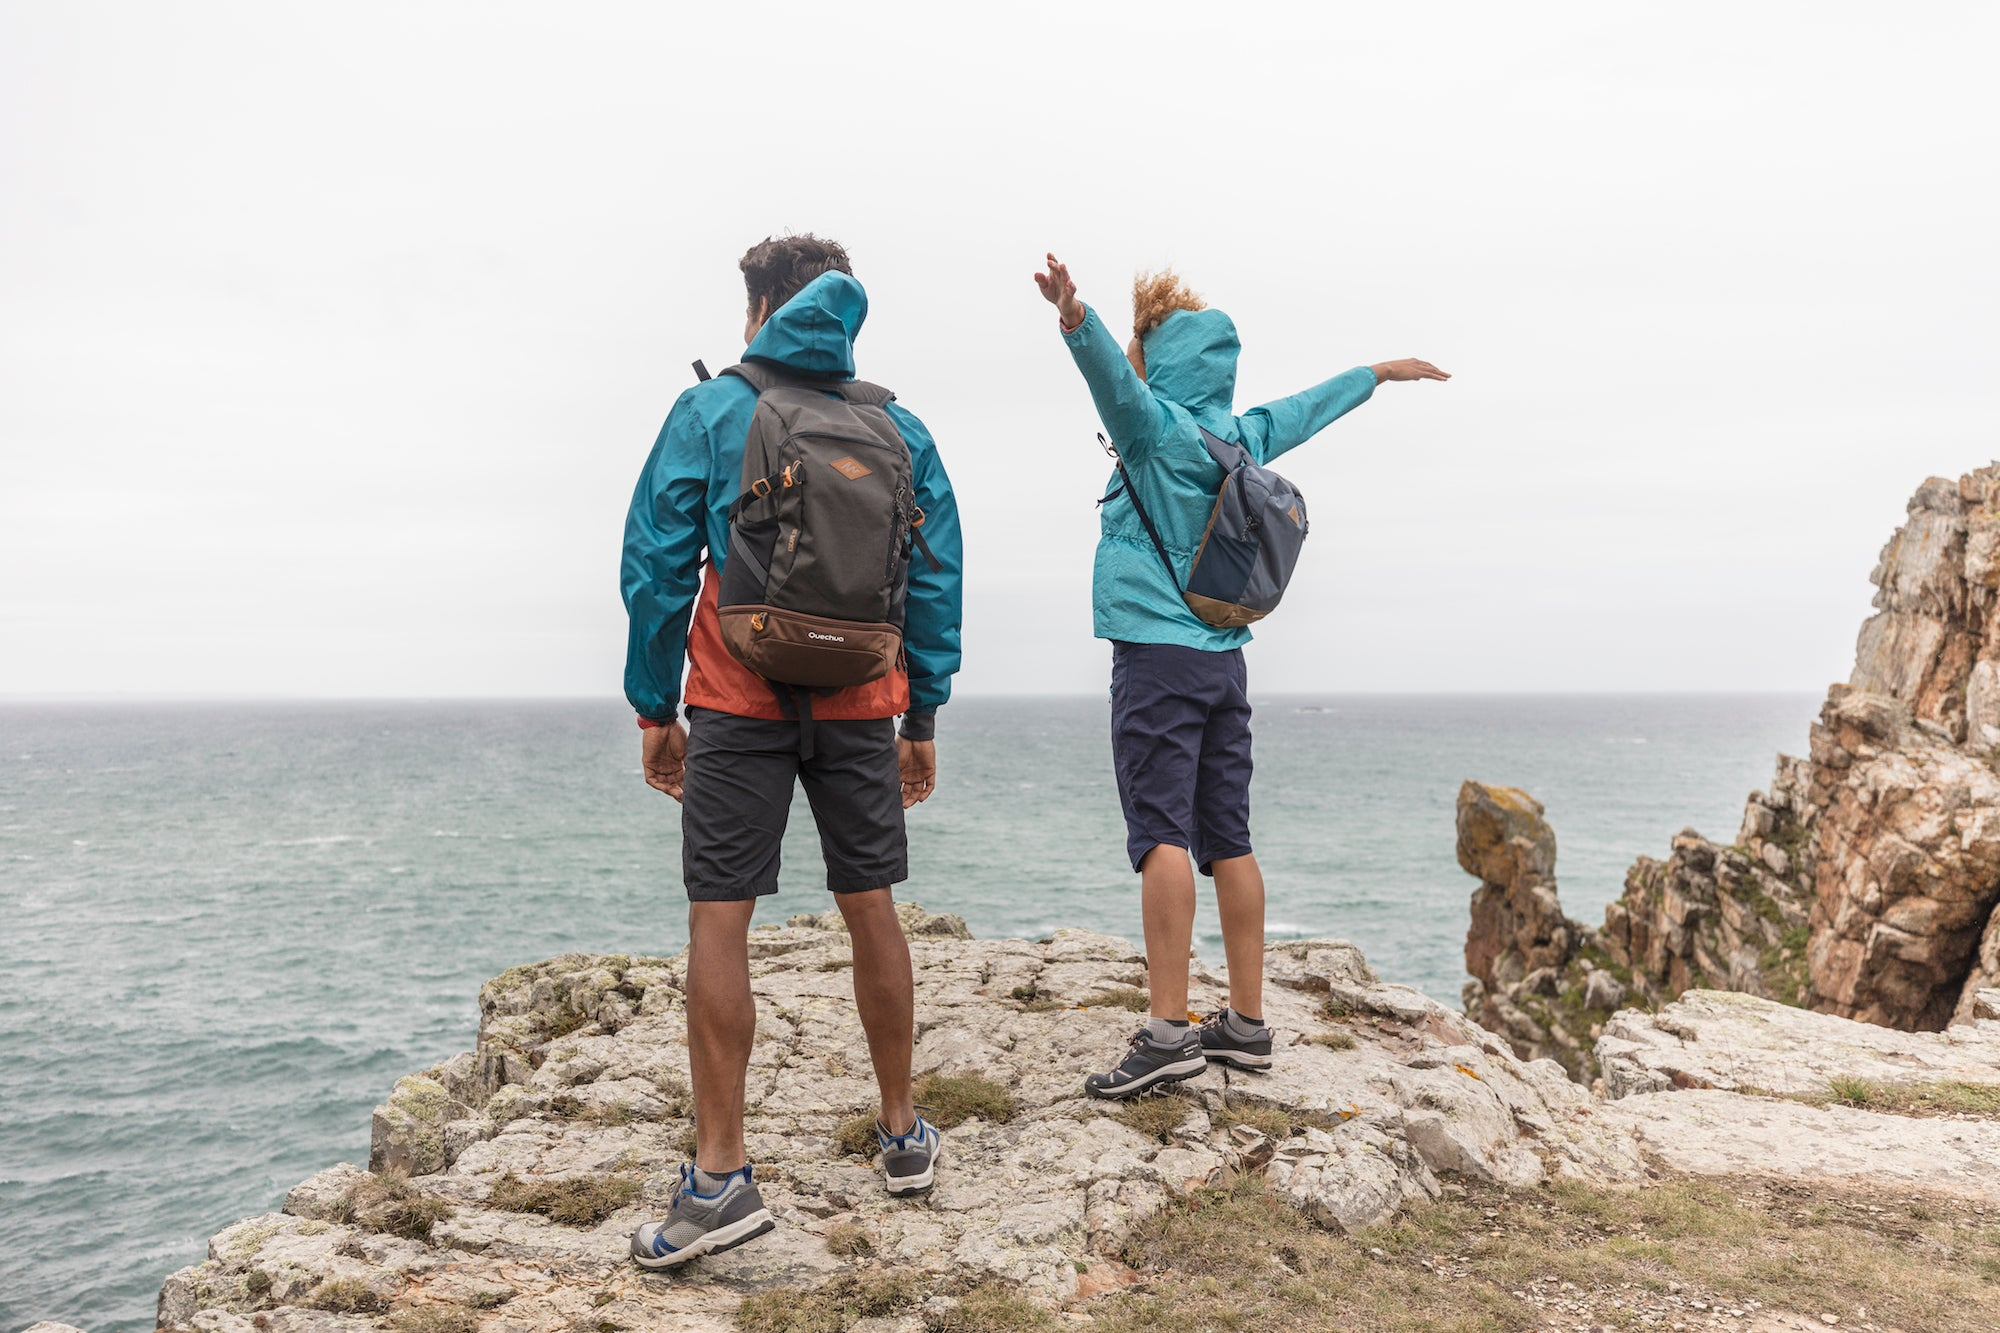 Quechua Celebrates 20 Years of Making Outdoor Adventuring More Affordable